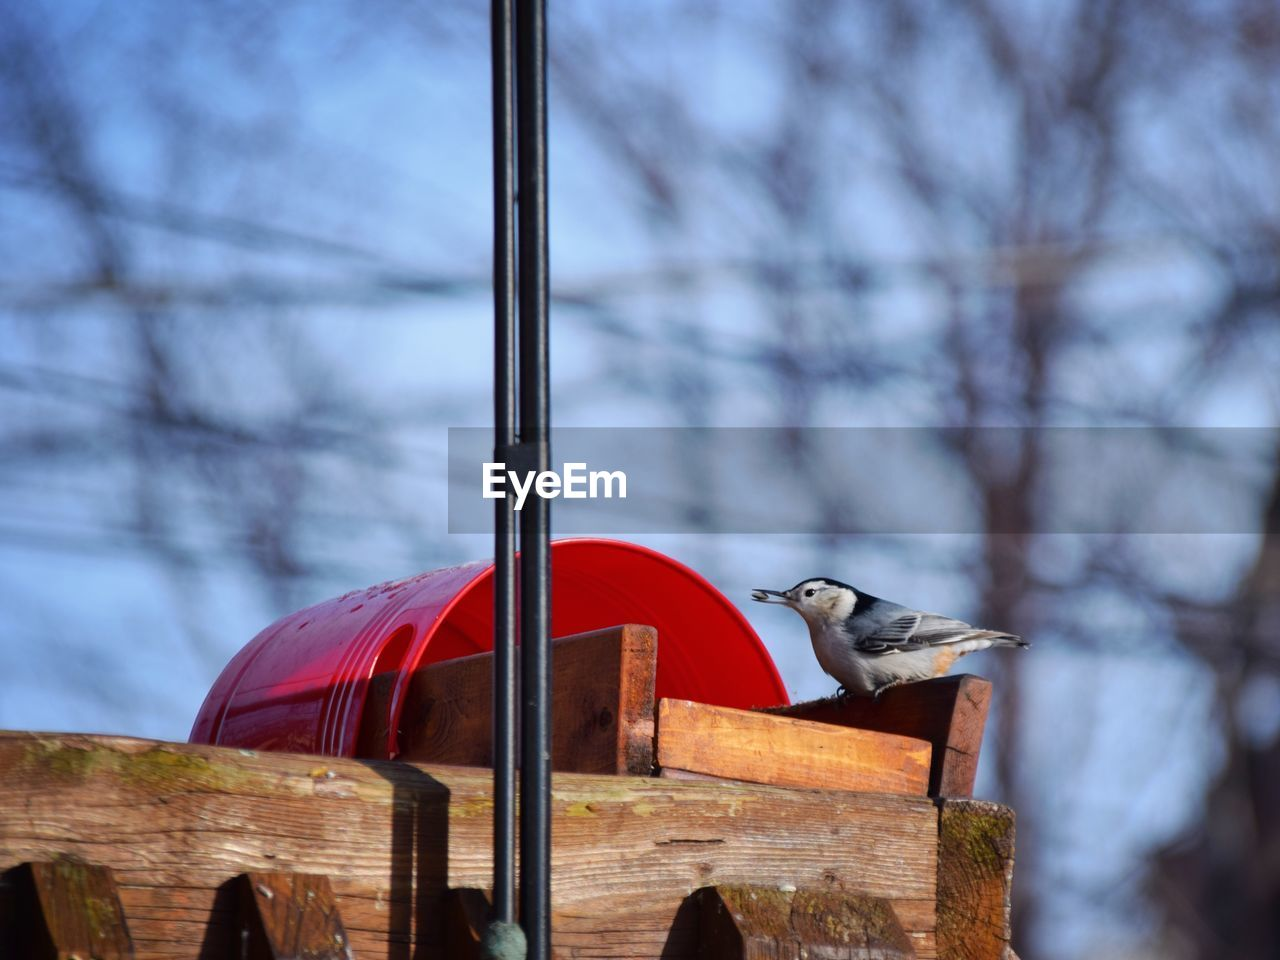 vertebrate, bird, animal, animal themes, tree, one animal, animal wildlife, no people, animals in the wild, nature, day, built structure, architecture, focus on foreground, perching, low angle view, wood - material, sky, outdoors